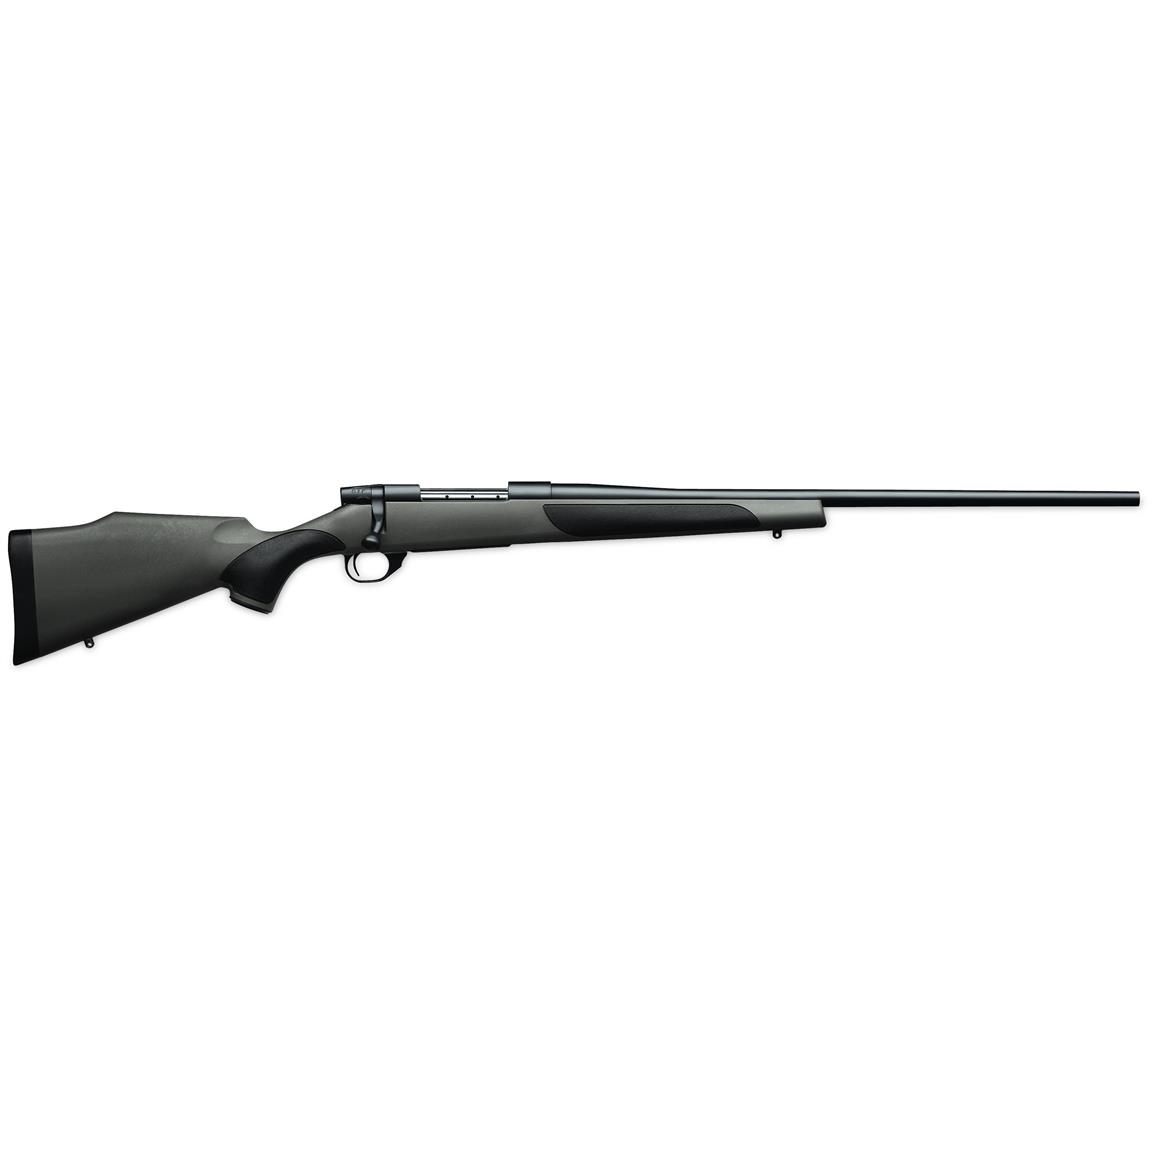 "Weatherby Vanguard 2 Synthetic, Bolt Action, .223 Remington, 24"" Barrel, 5+1 Rounds"